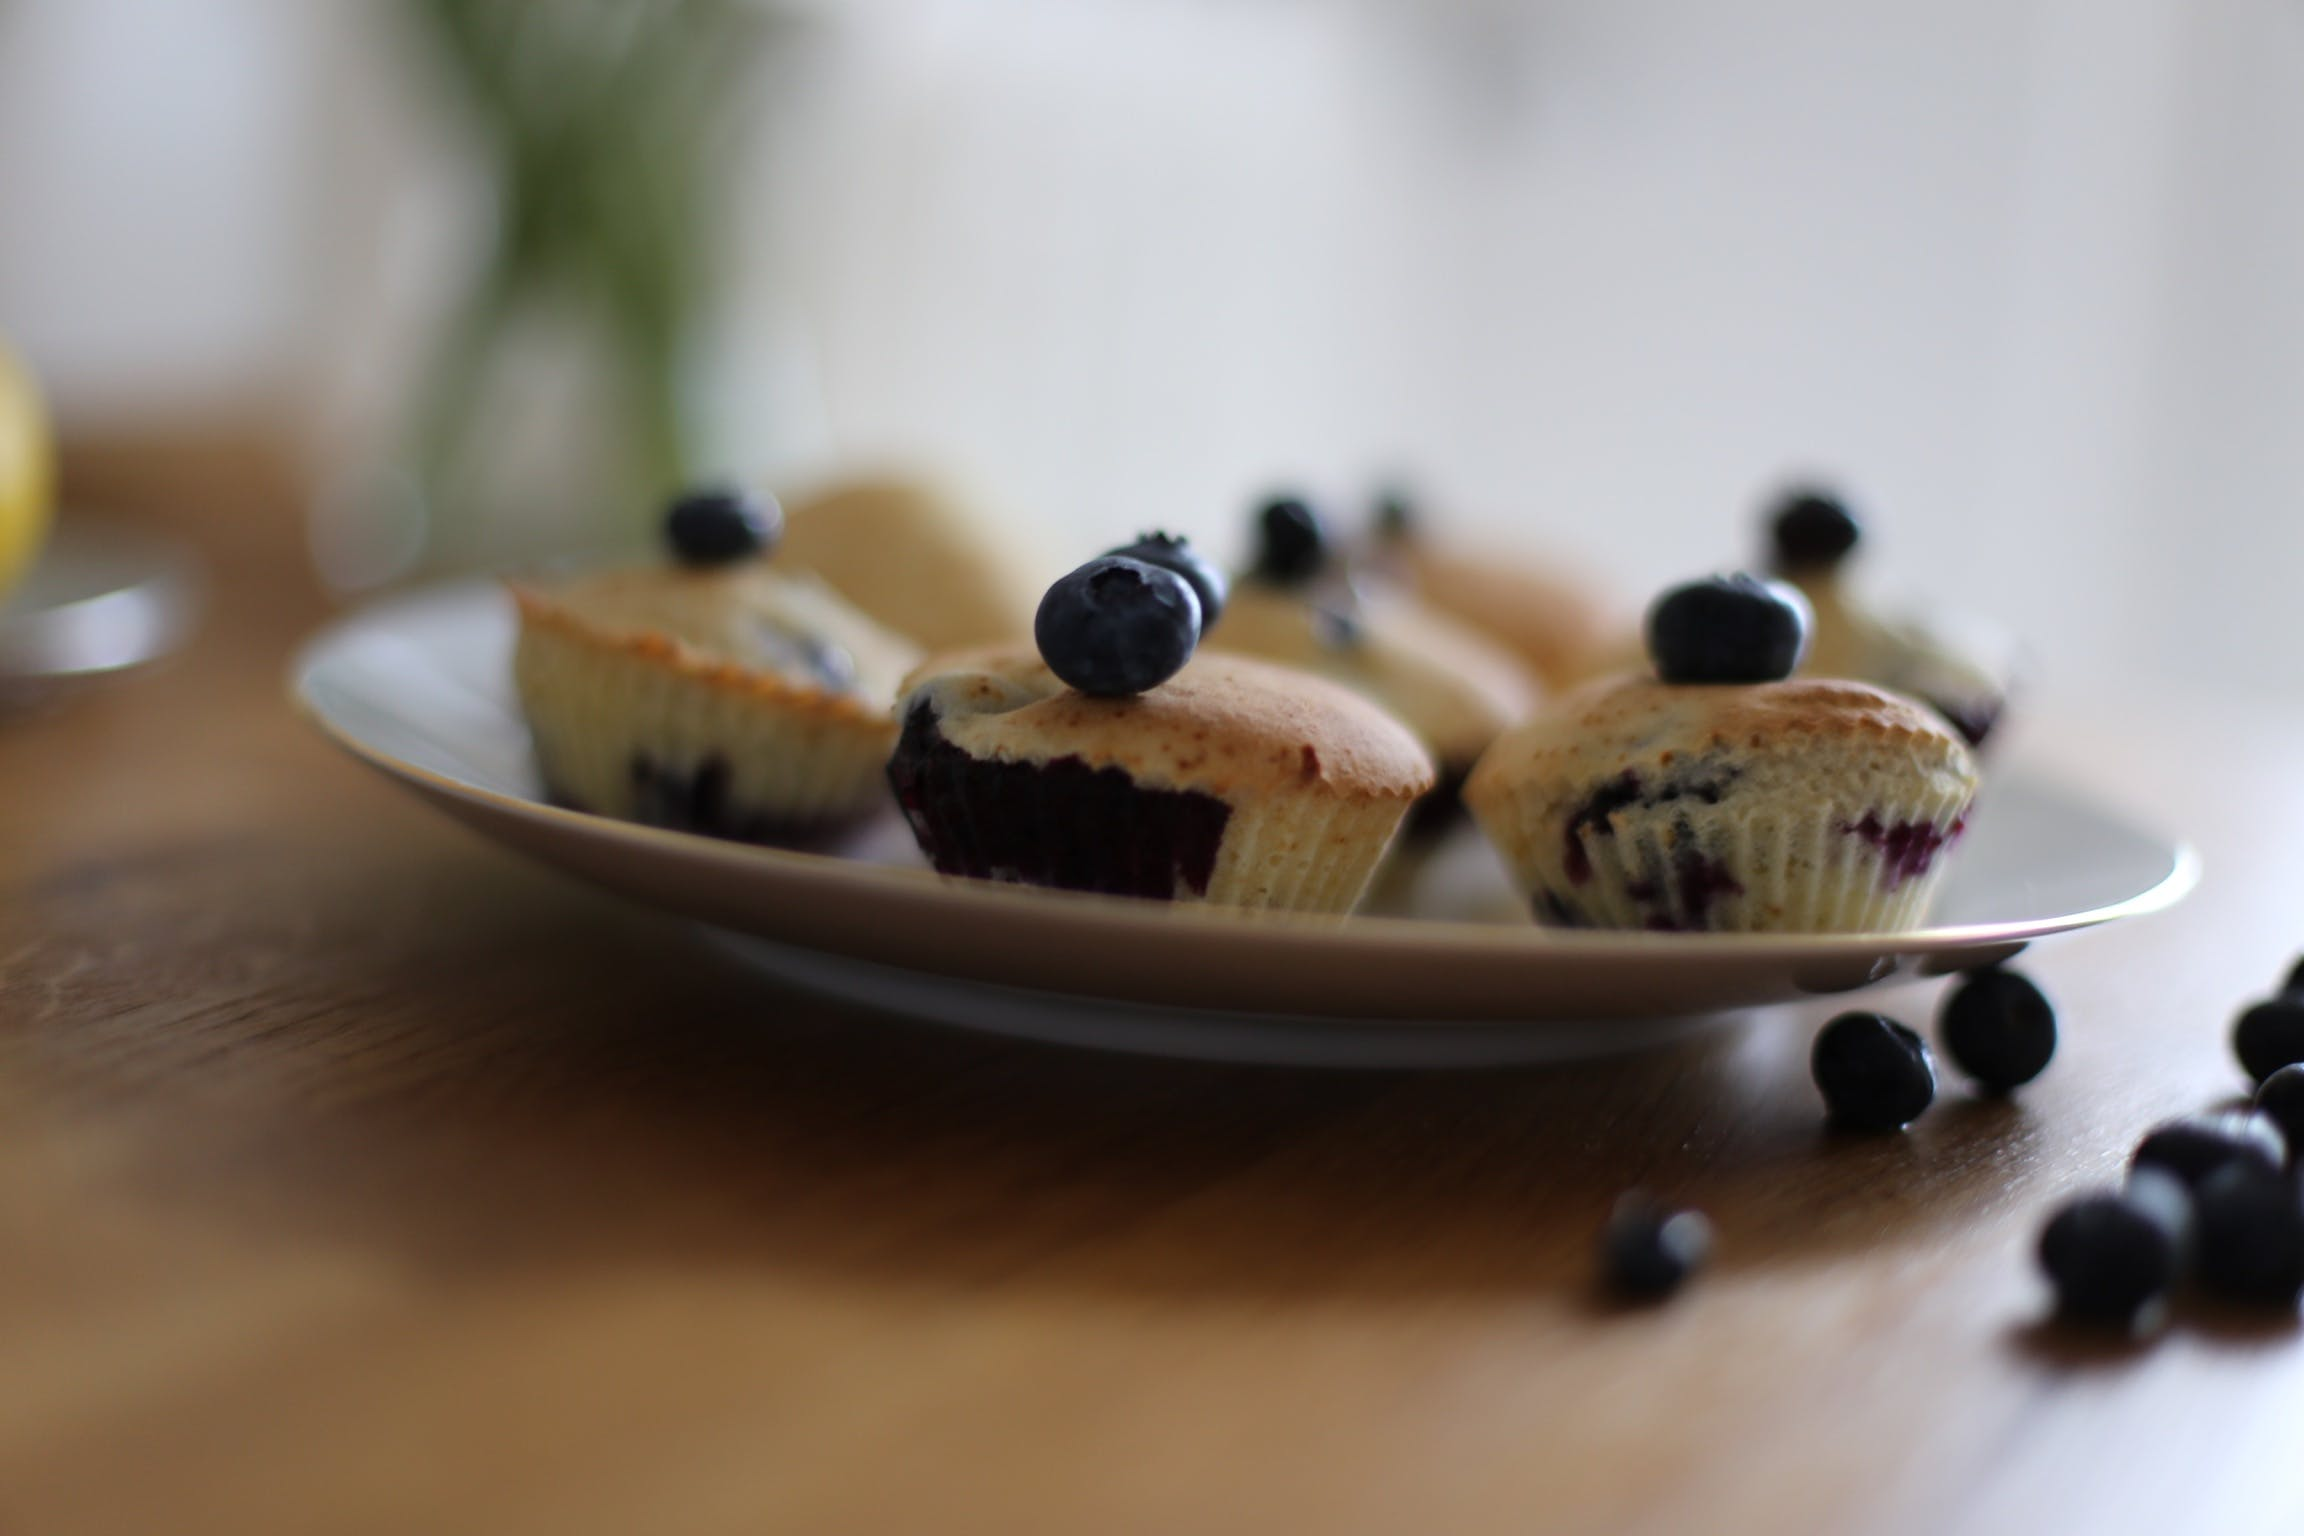 Free stock photo of blueberries, blueberry, blueberry muffins, close up